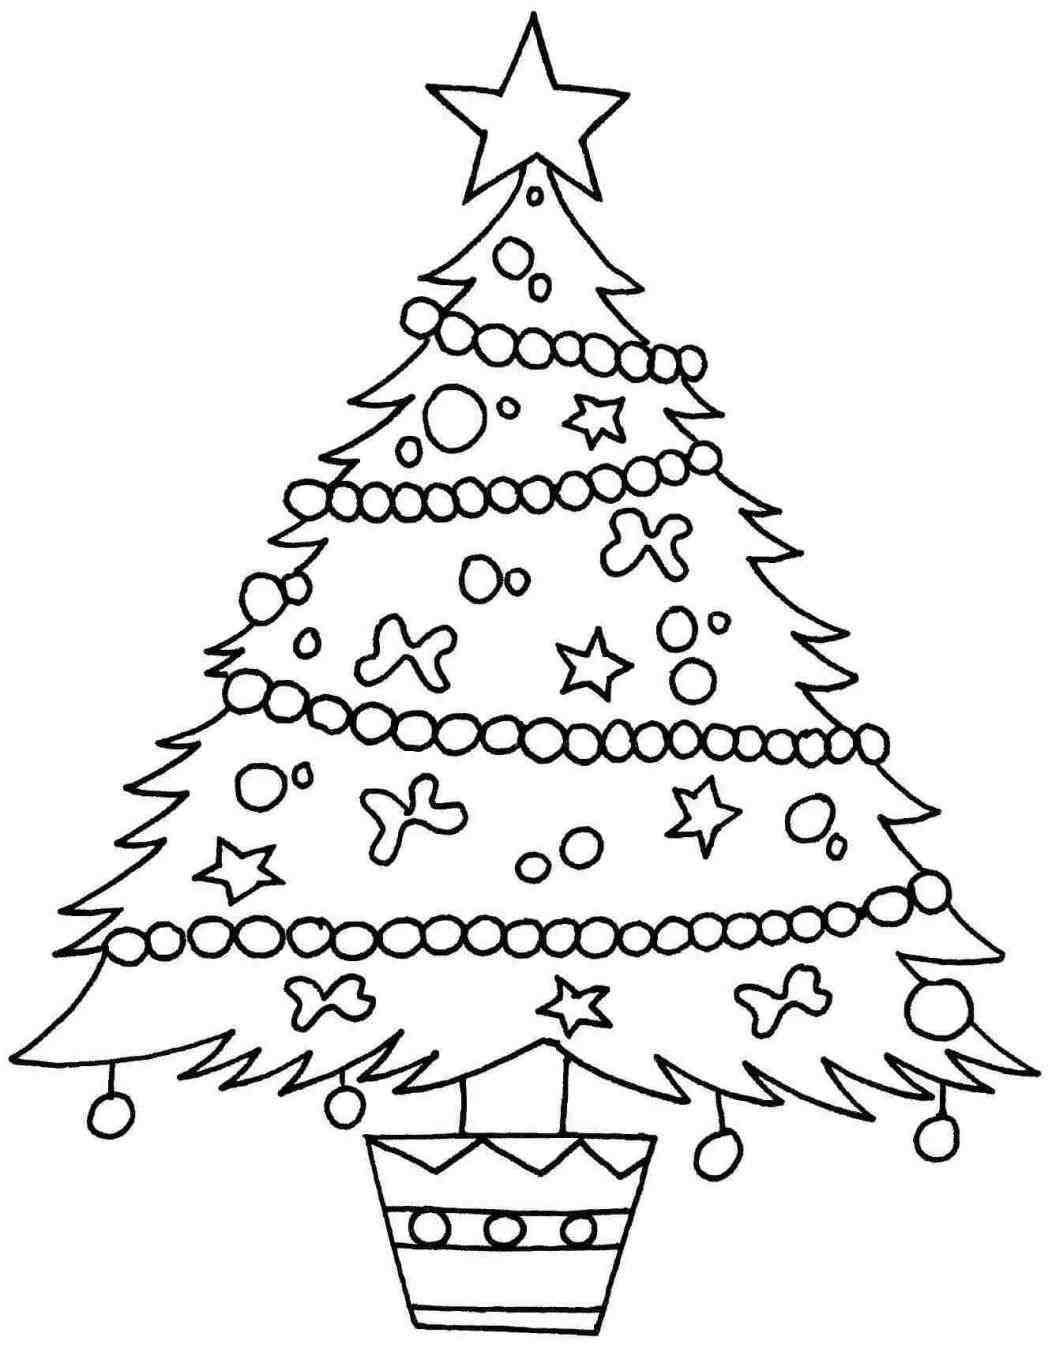 outline of a tree ぜいたく pine tree illustration simple 終わり tree of outline a